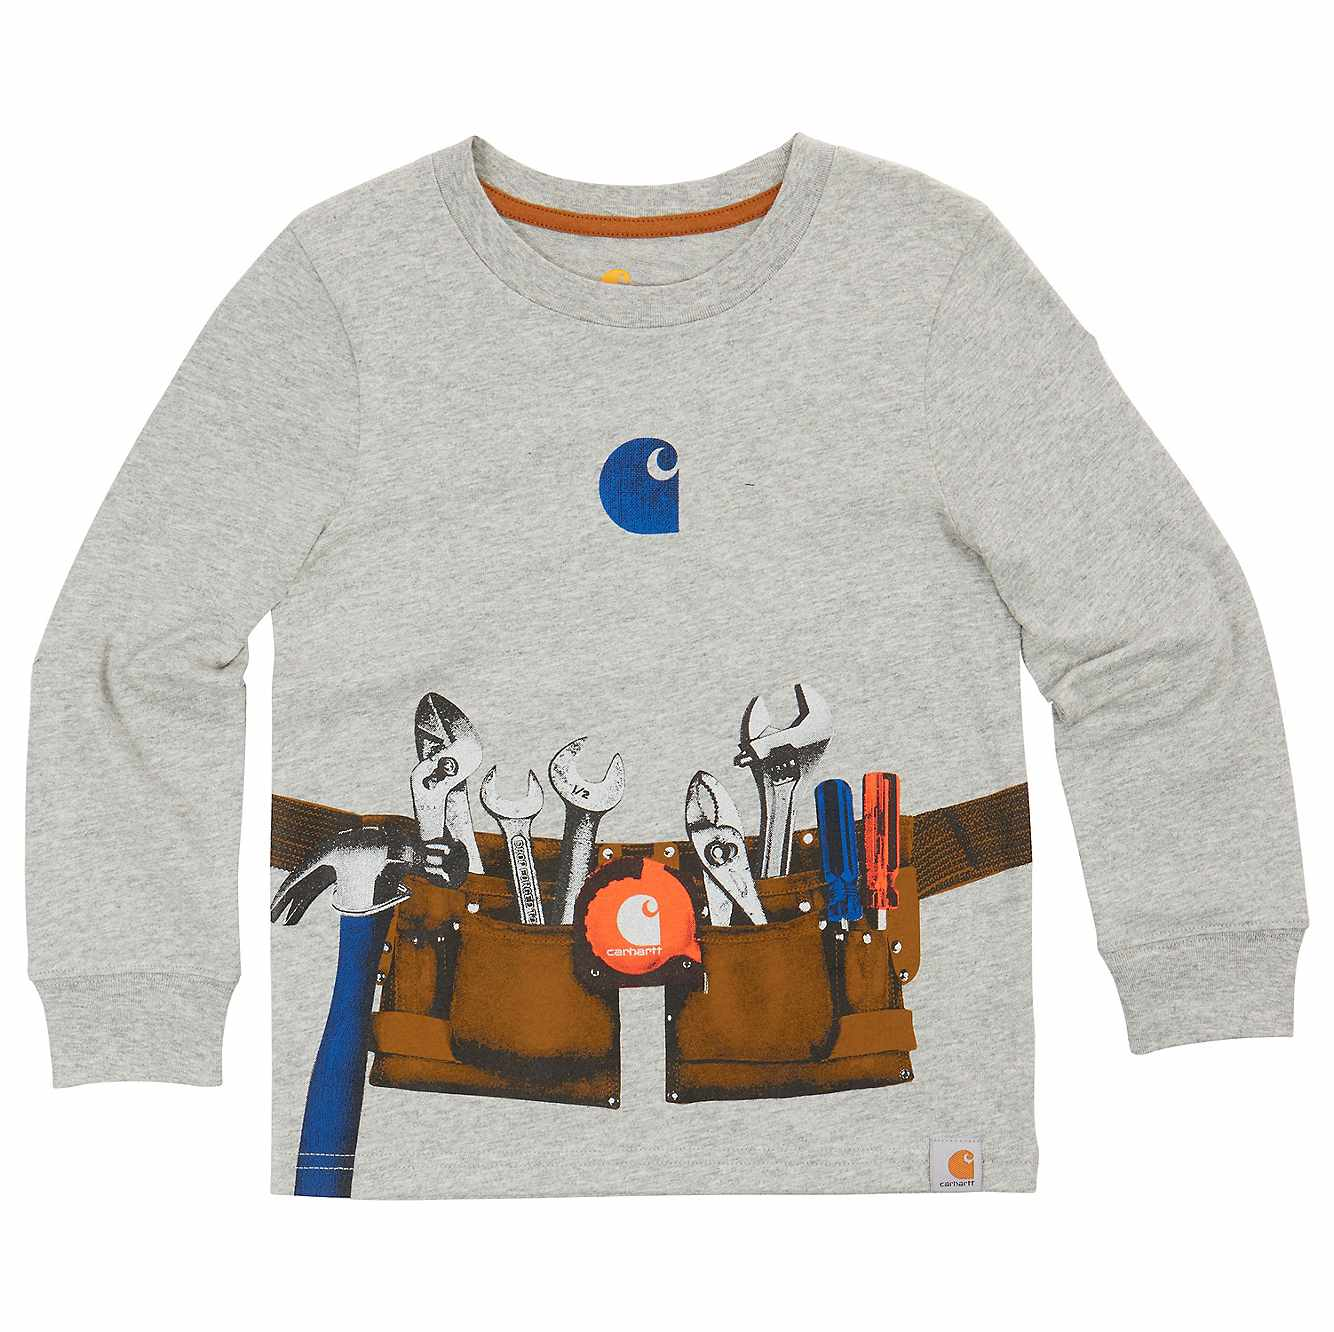 Picture of Long Sleeve Toolbelt Tee in Grey Heather